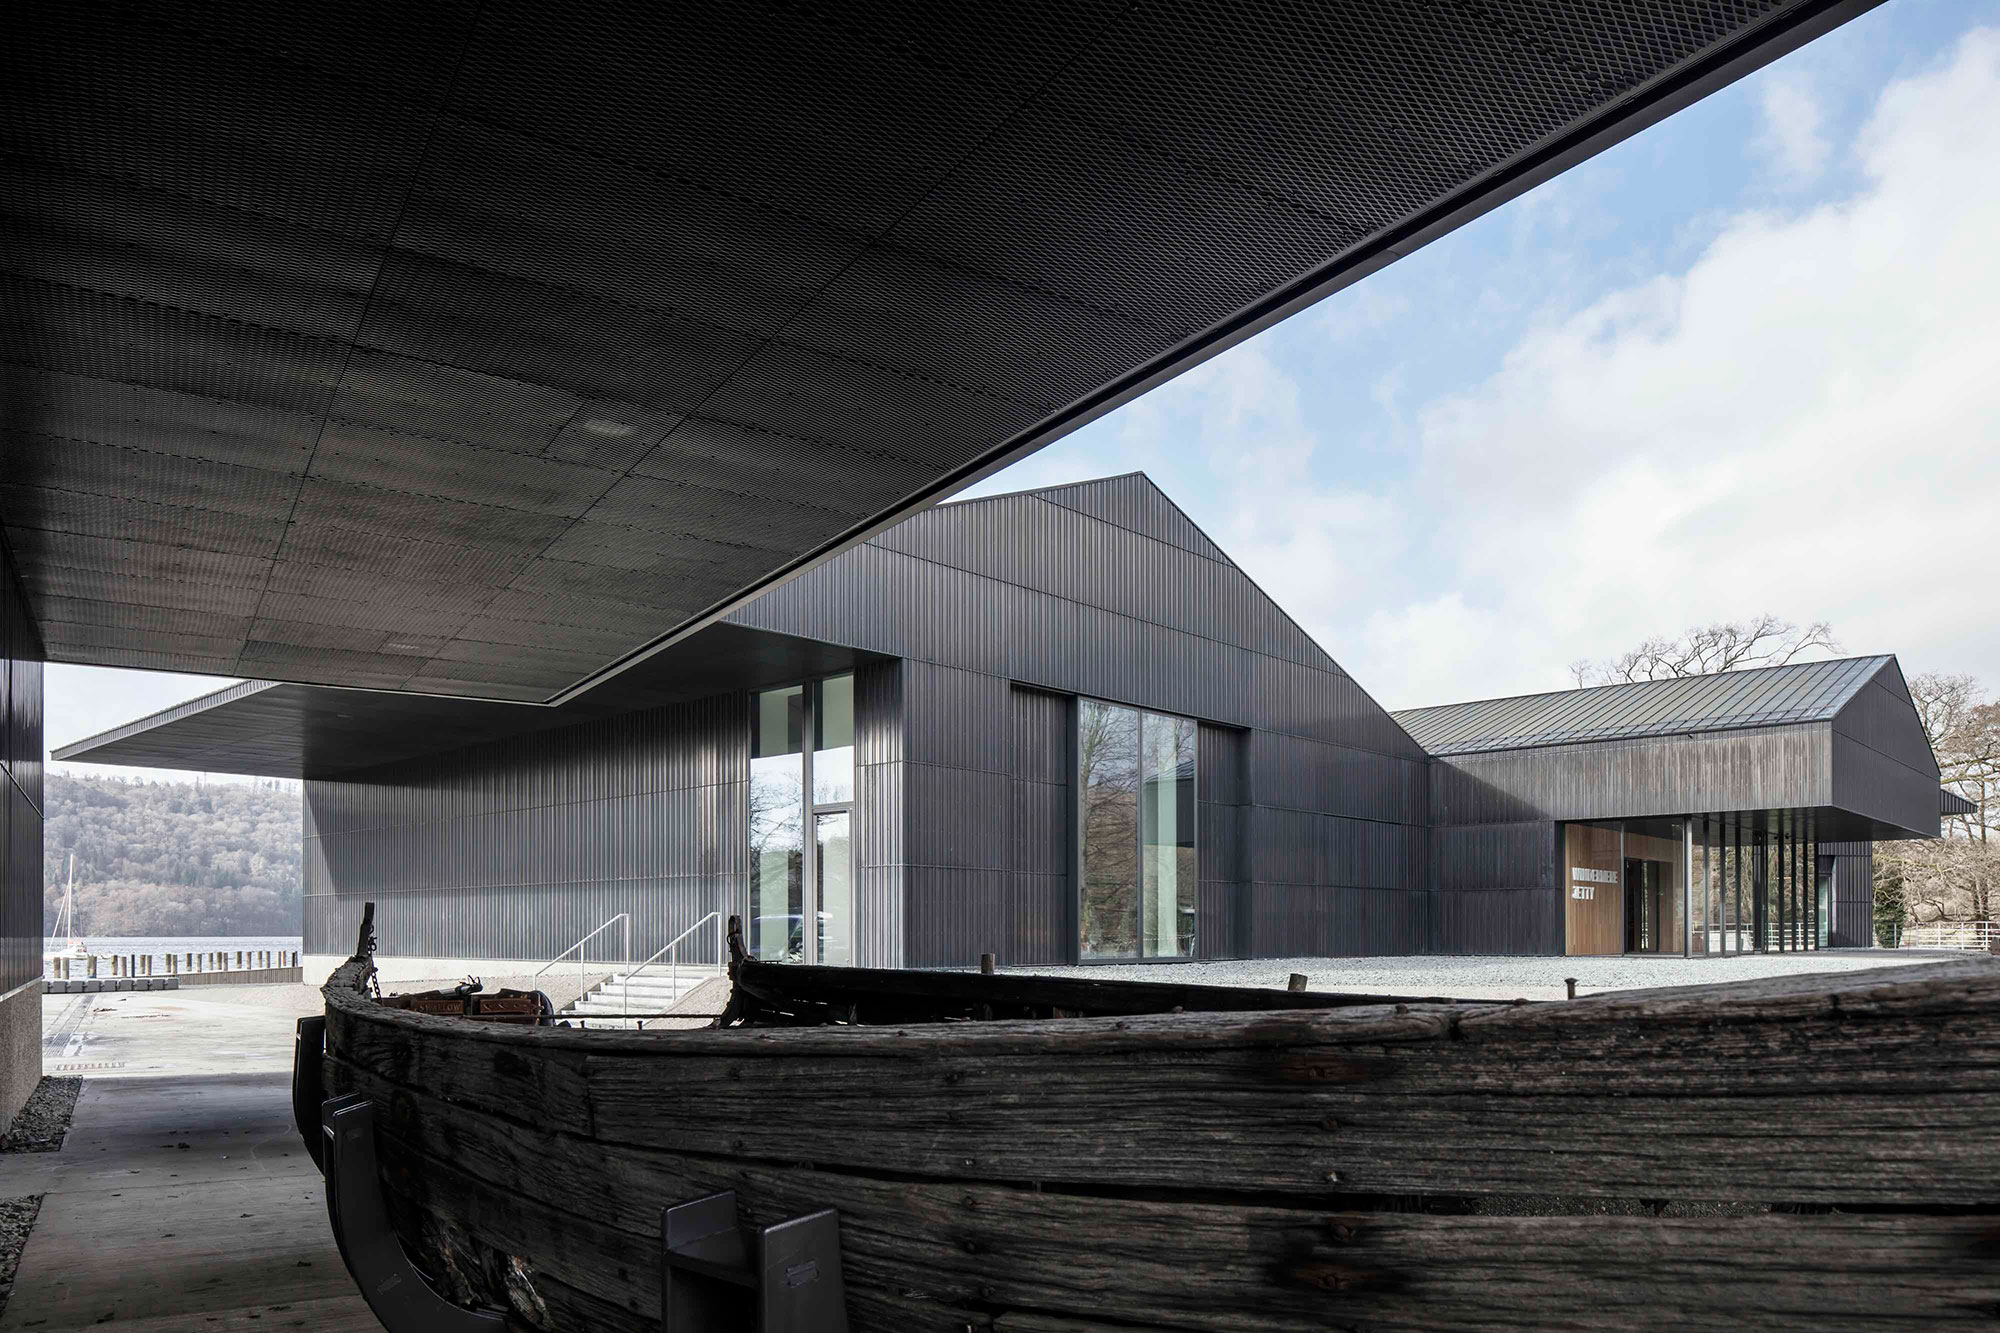 Kingspan Kooltherm products are available for a wide range of applications, achieving thermal conductivities as low as 0.018 W/ mK making them ideal for projects such as the Windermere Jetty Museum by Carmody Groarke. Photograph by Christian Richter